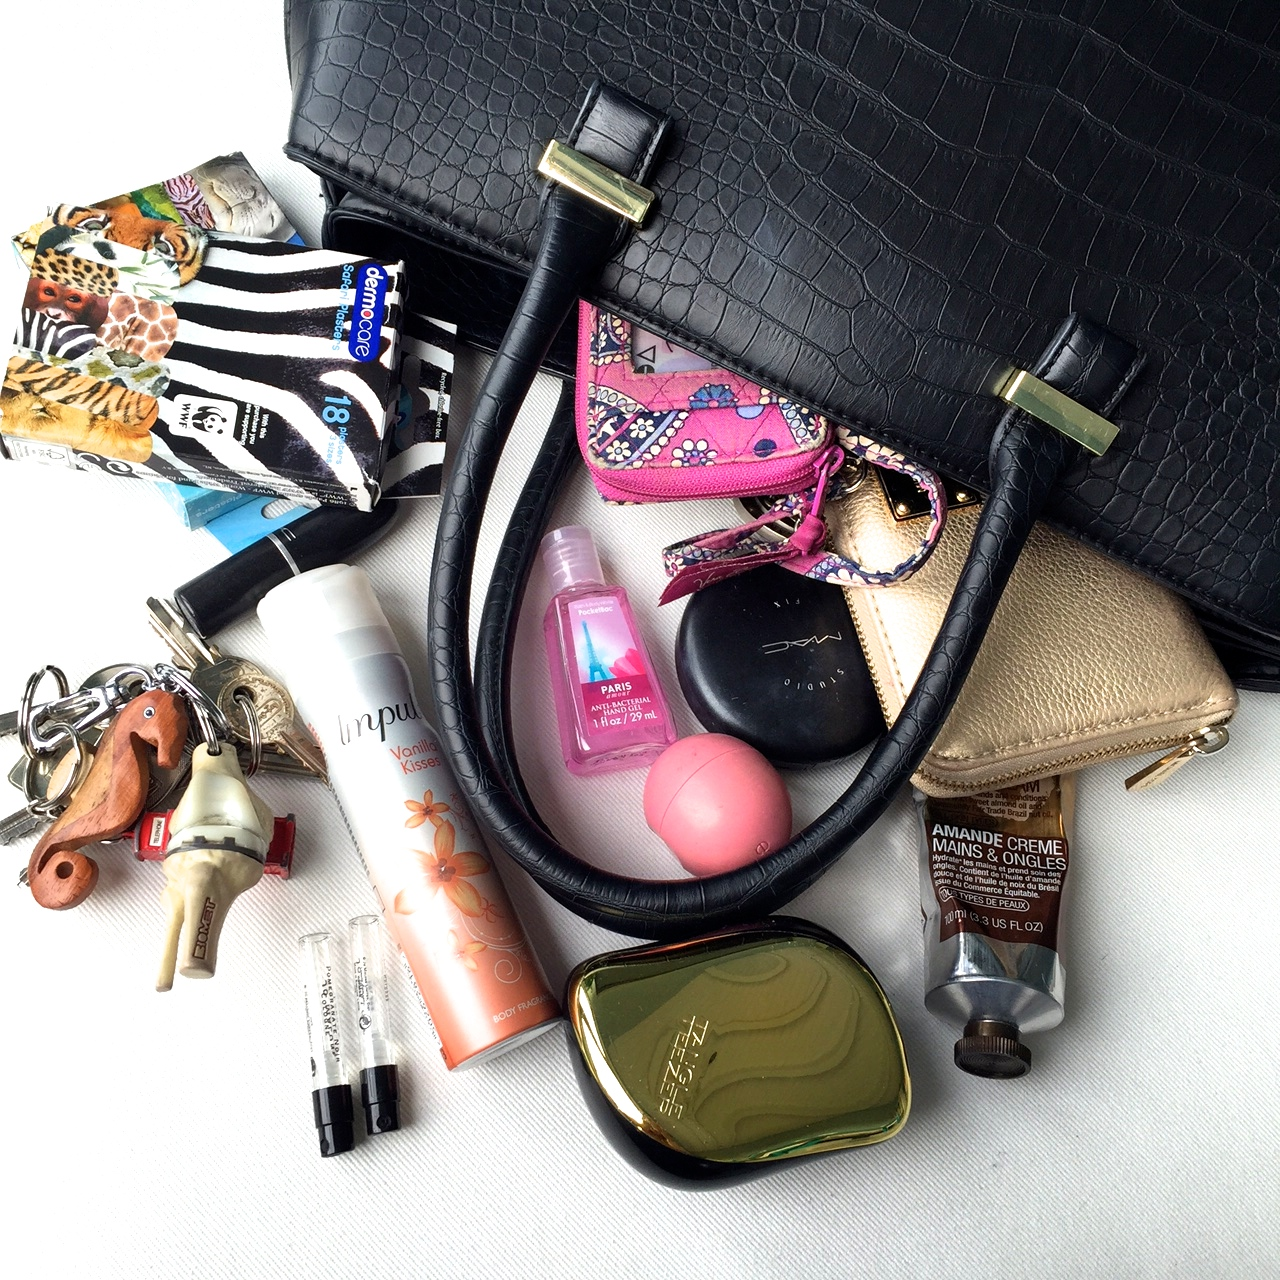 13-1-things-you-should-have-in-your-bag